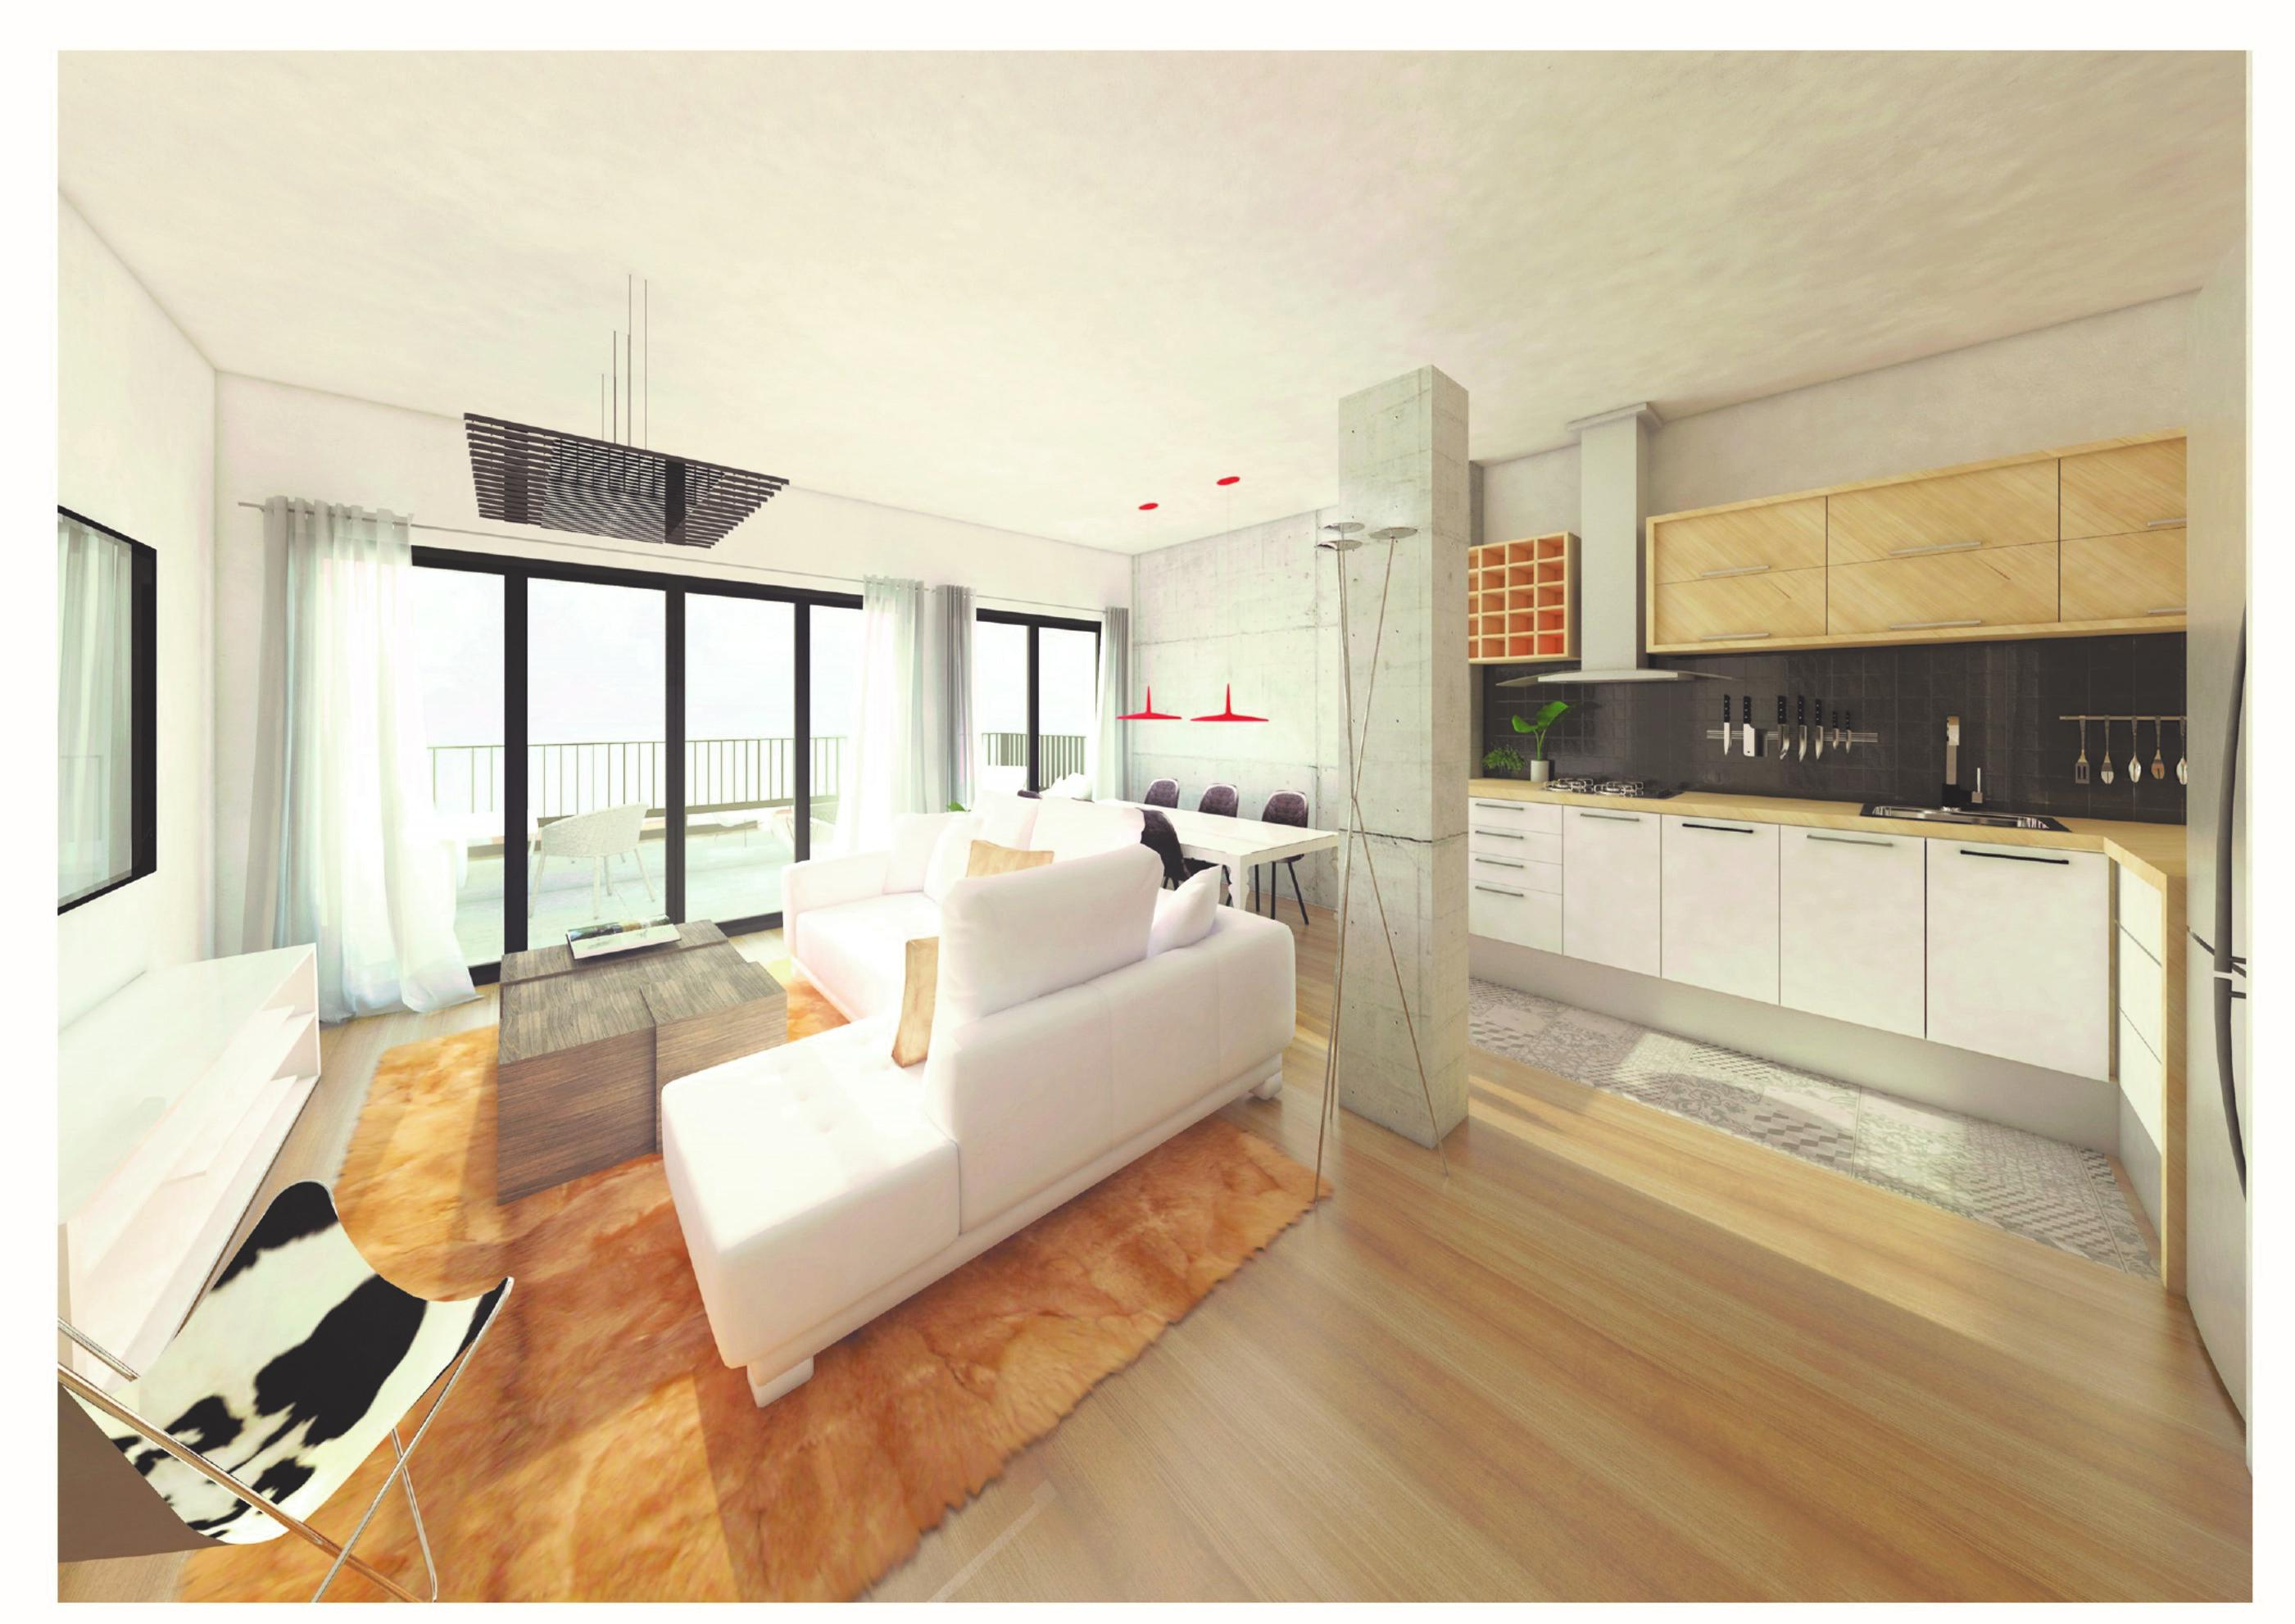 220653 Penthouse for sale in Sarrià-Sant Gervasi, Sant Gervasi-Galvany 24